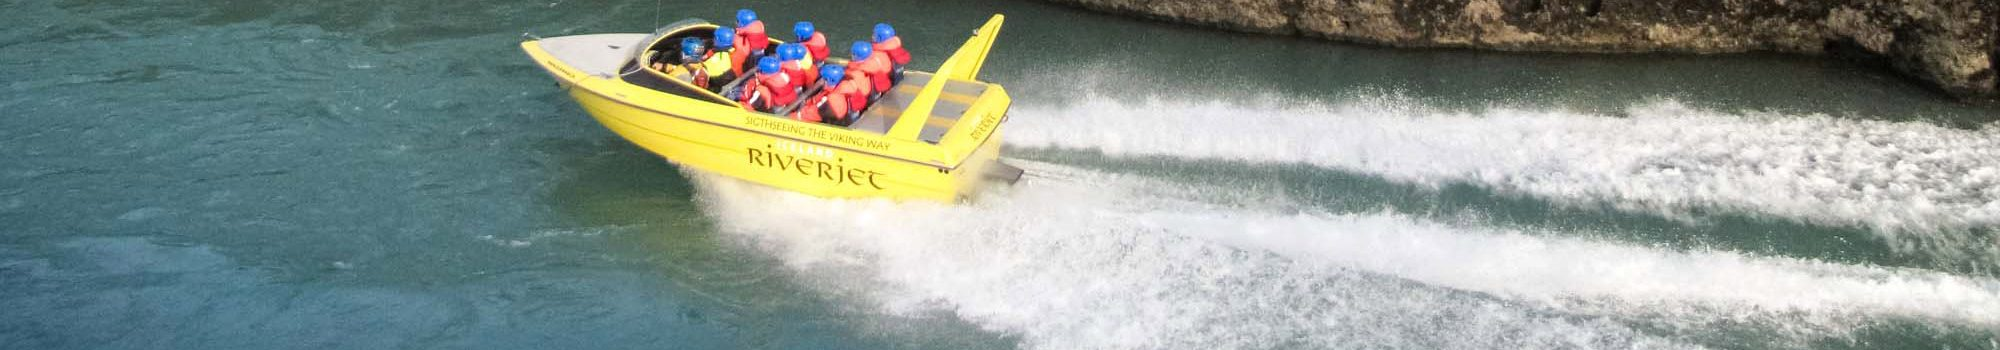 riverjet boat gliding over water